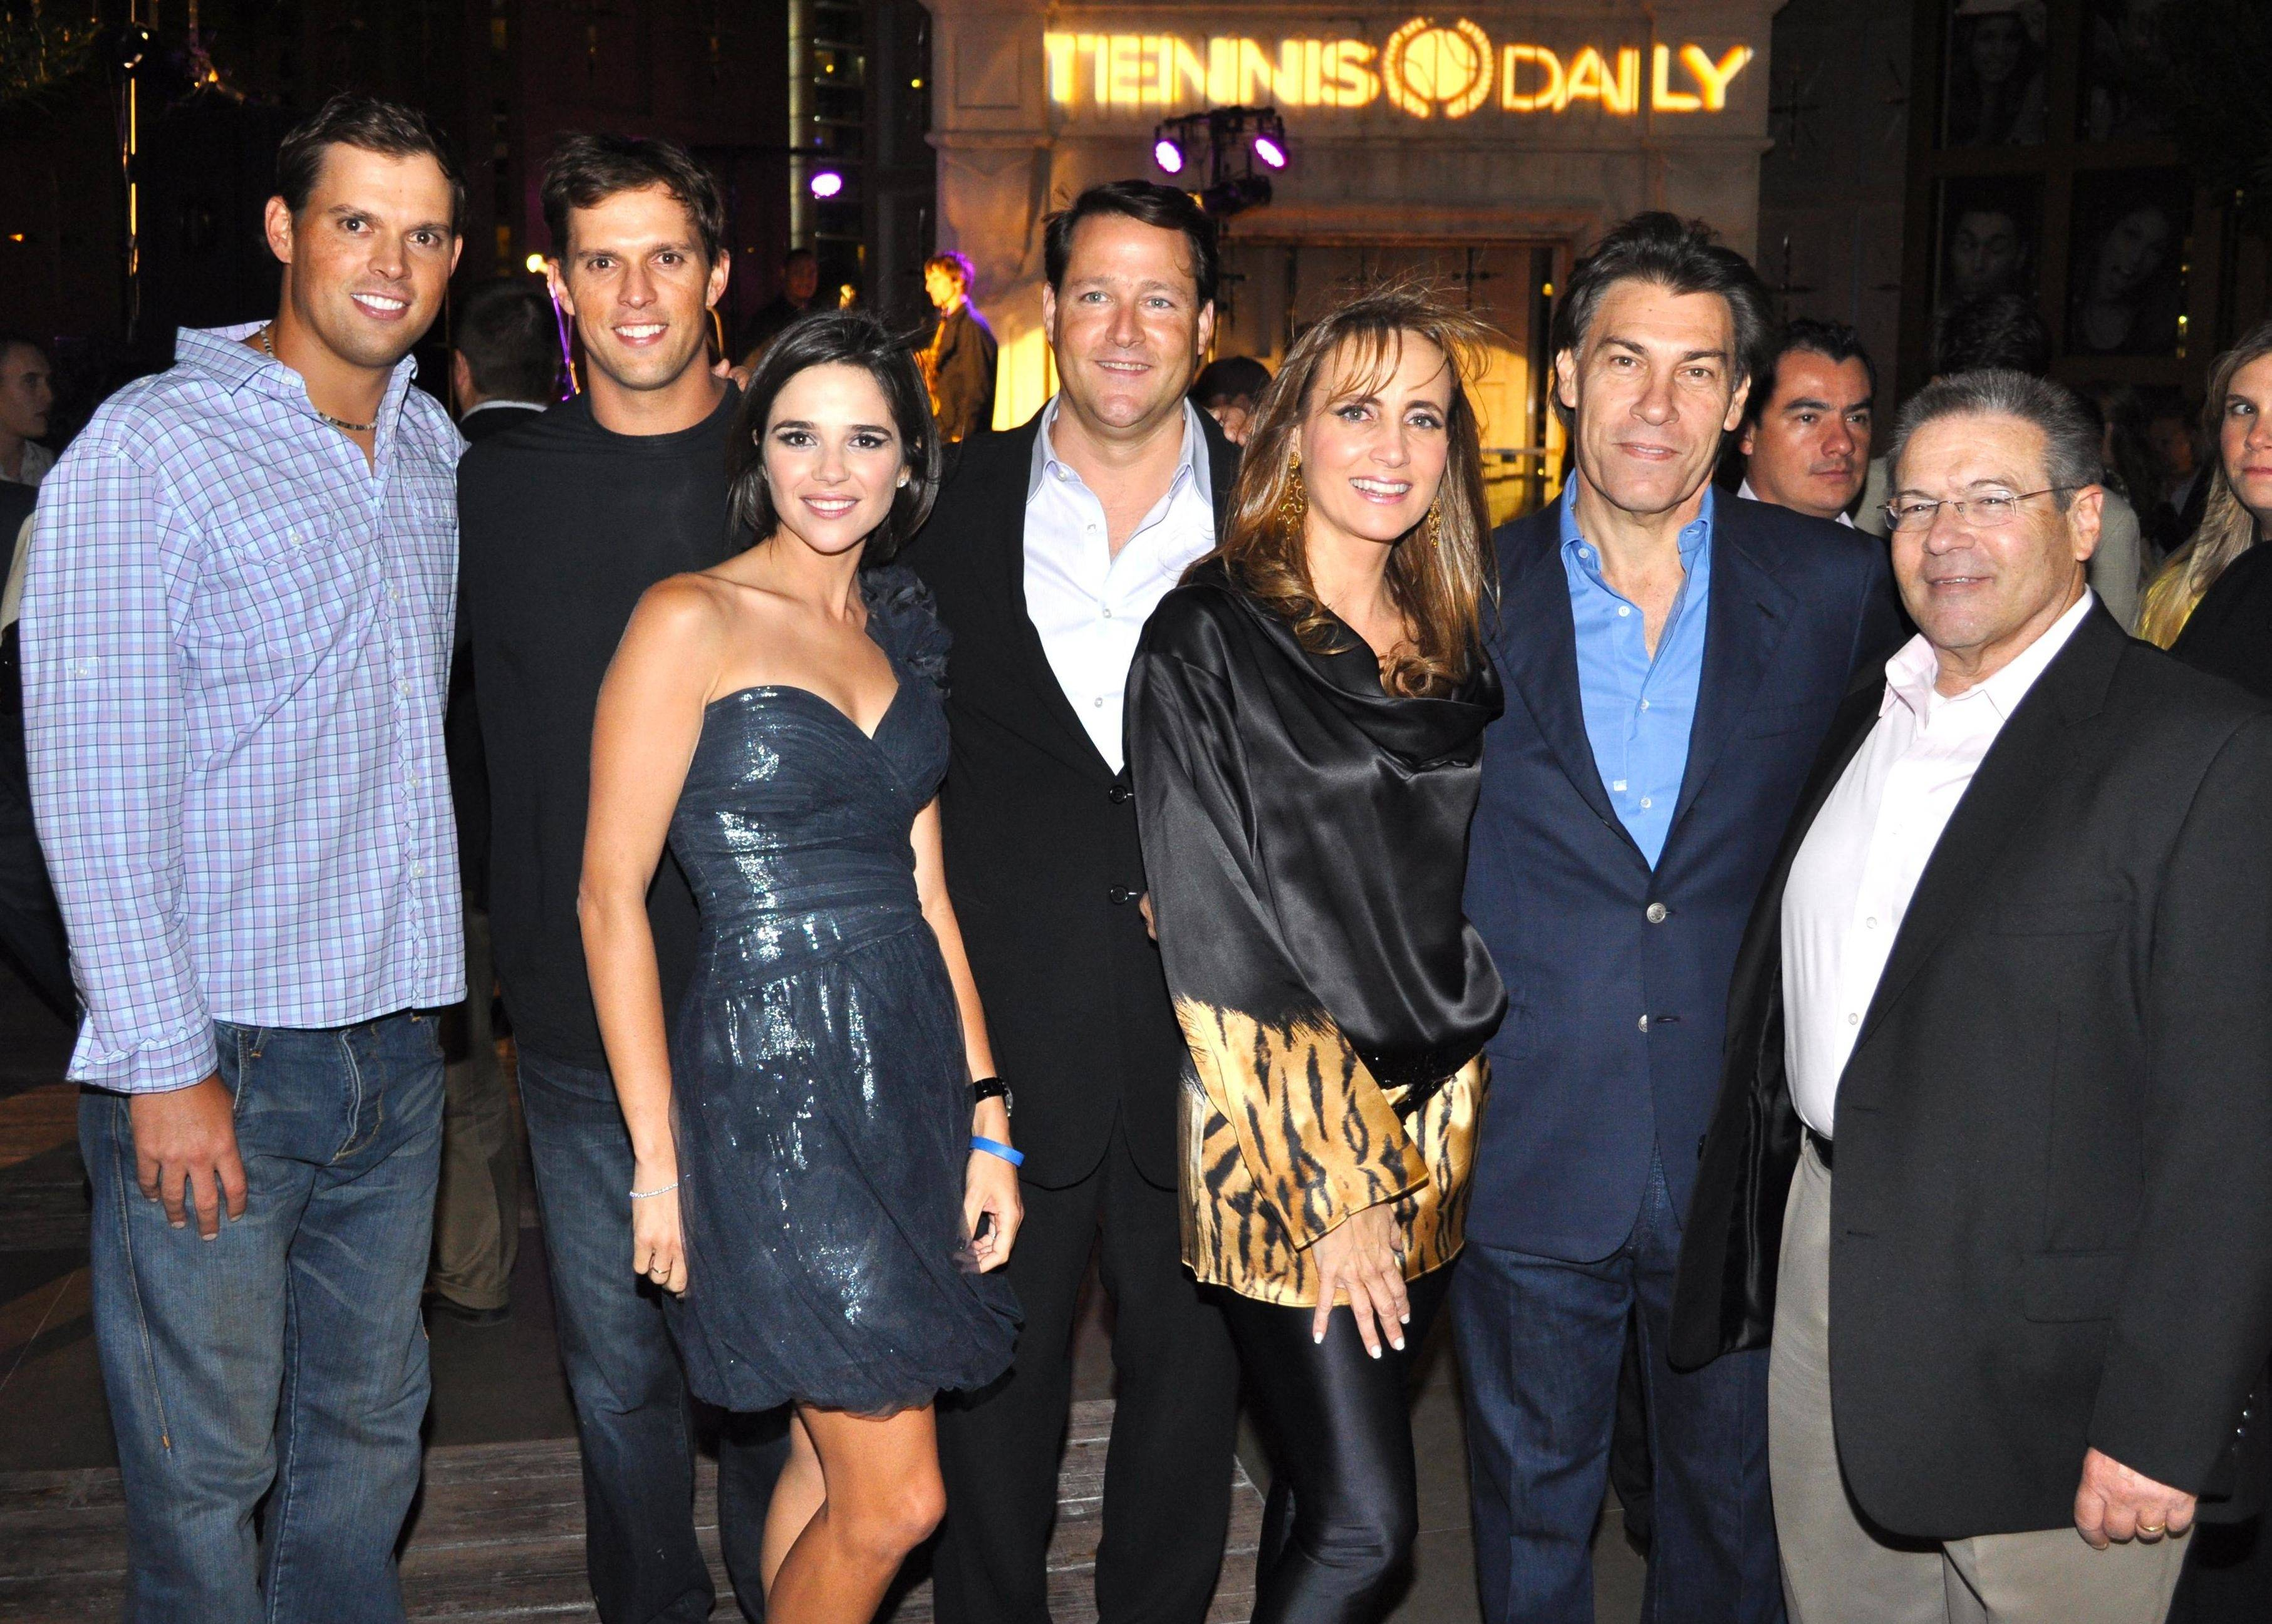 Haute Event: Number One Tennis Team Helps Launch Tennis Social Network